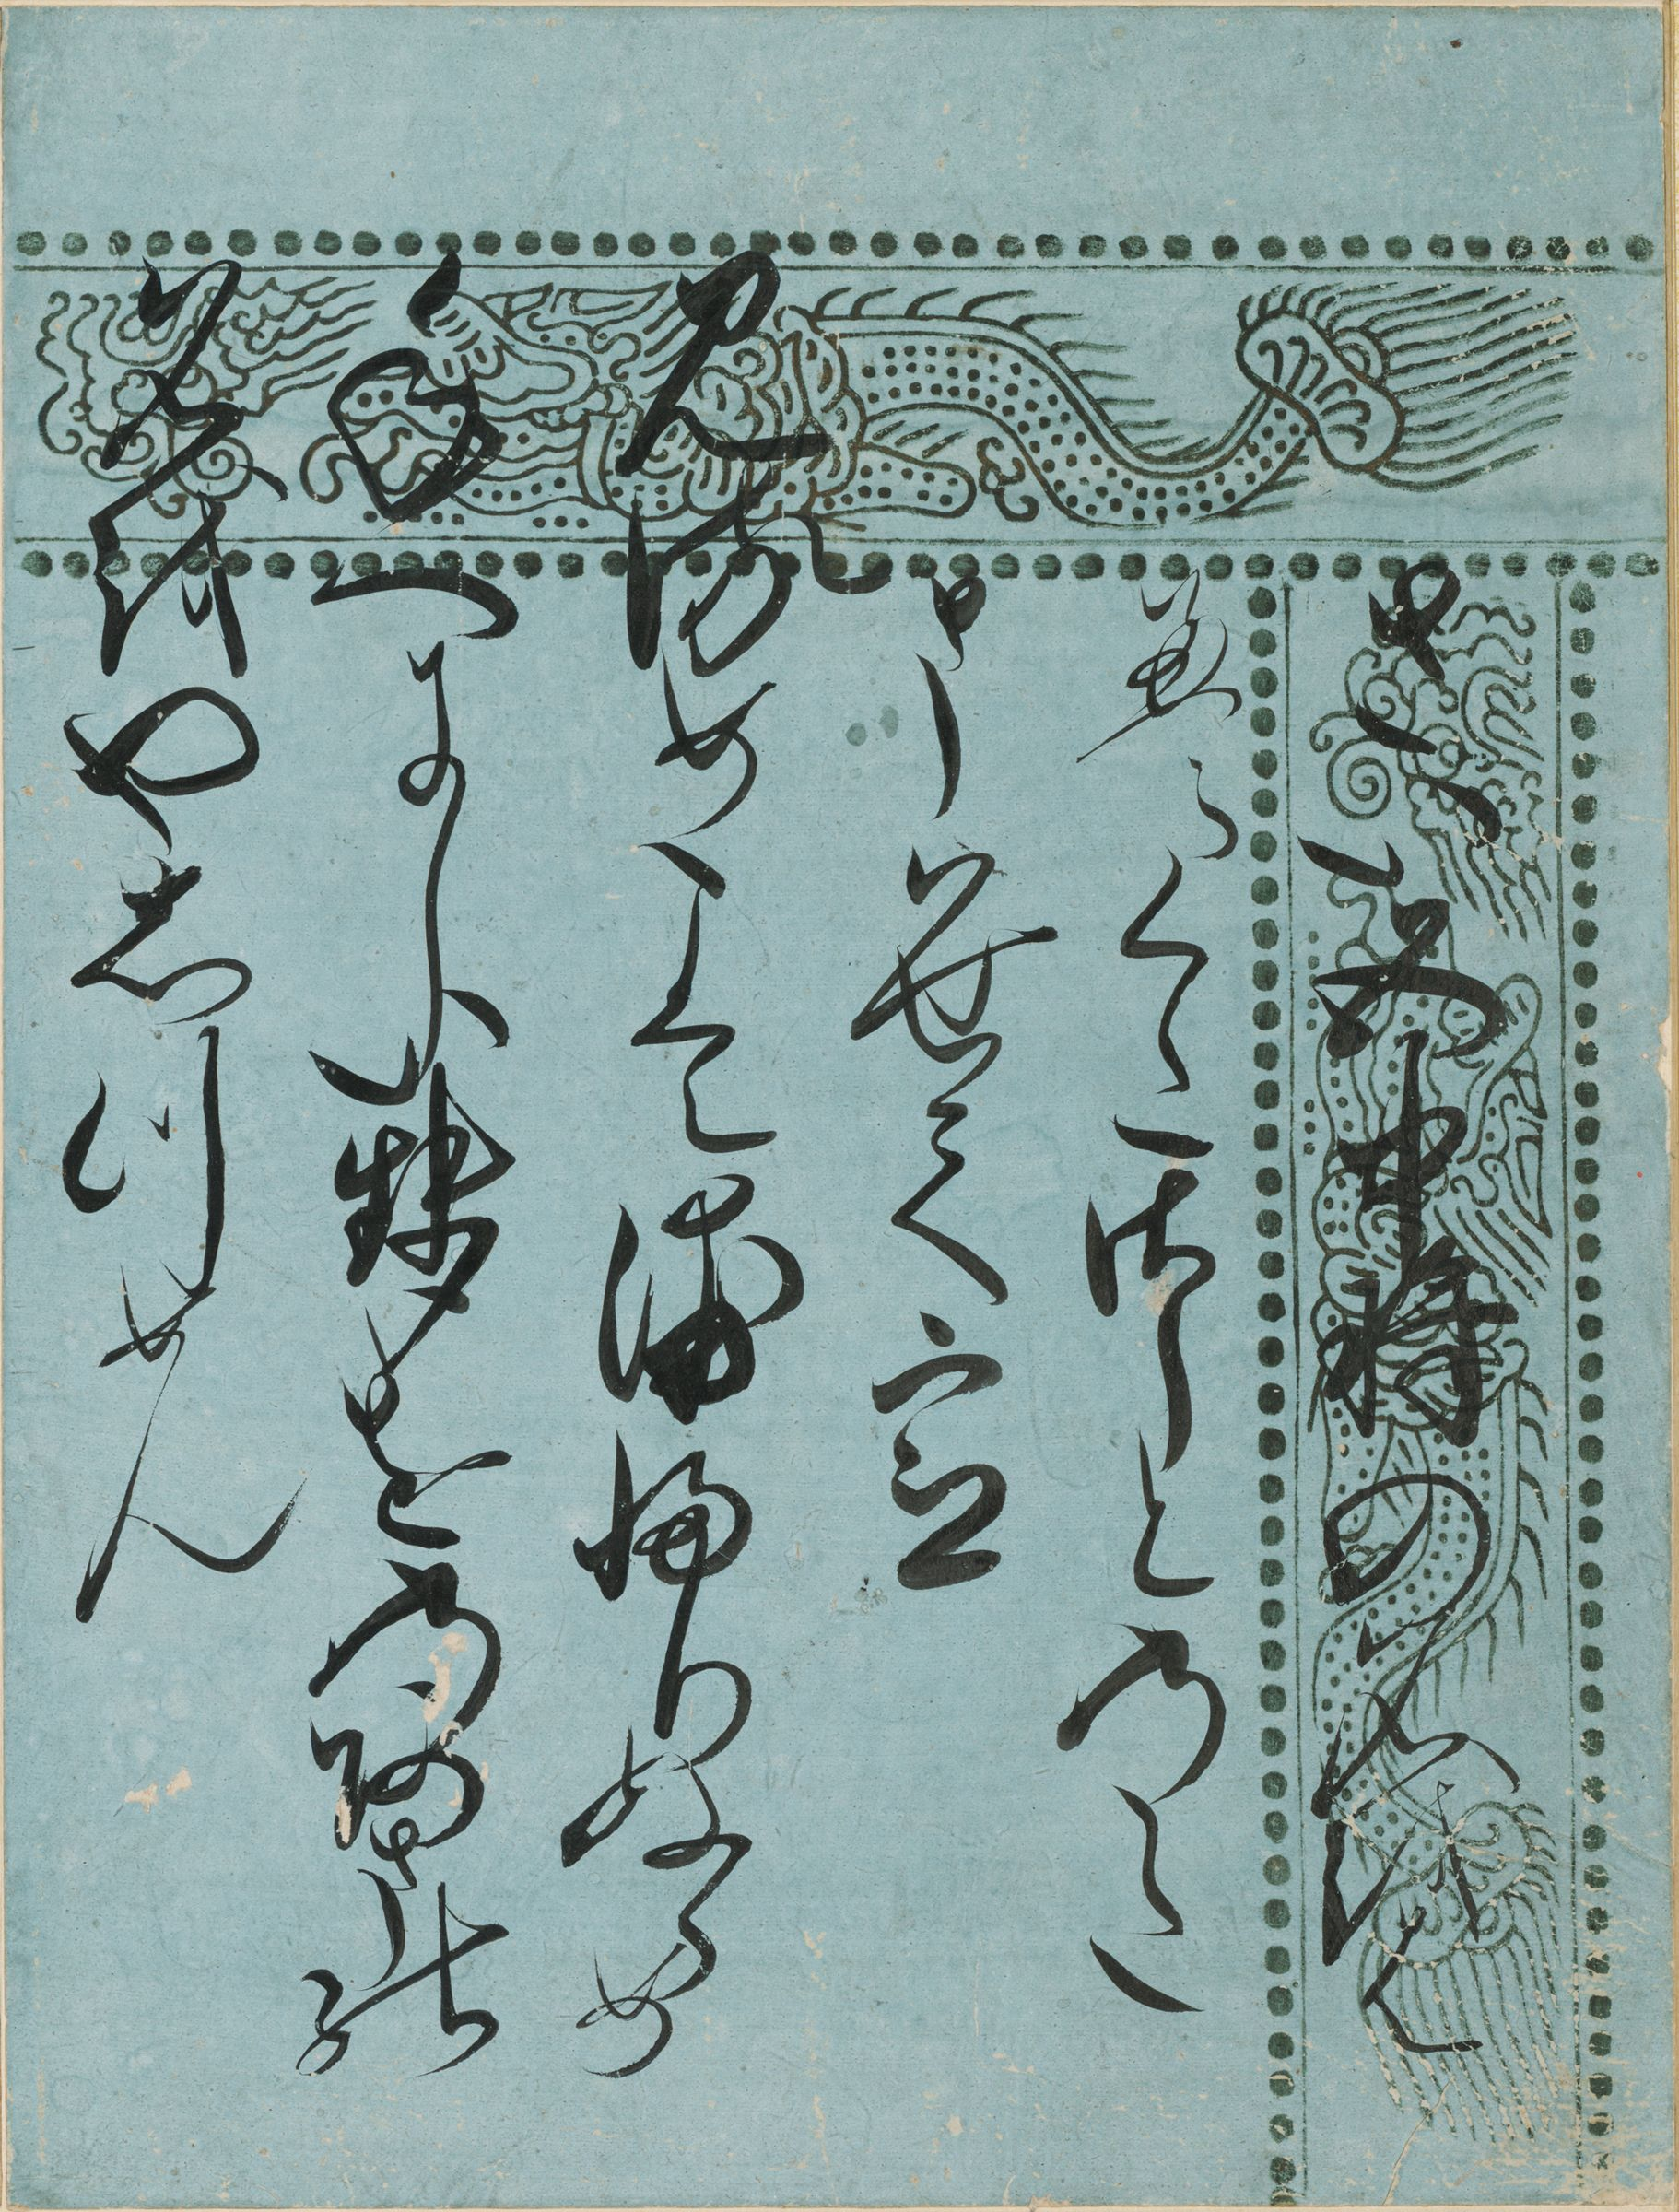 The Picture Contest (Eawase), Calligraphic Excerpt From Chapter 17 Of The Tale Of Genji (Genji Monogatari)